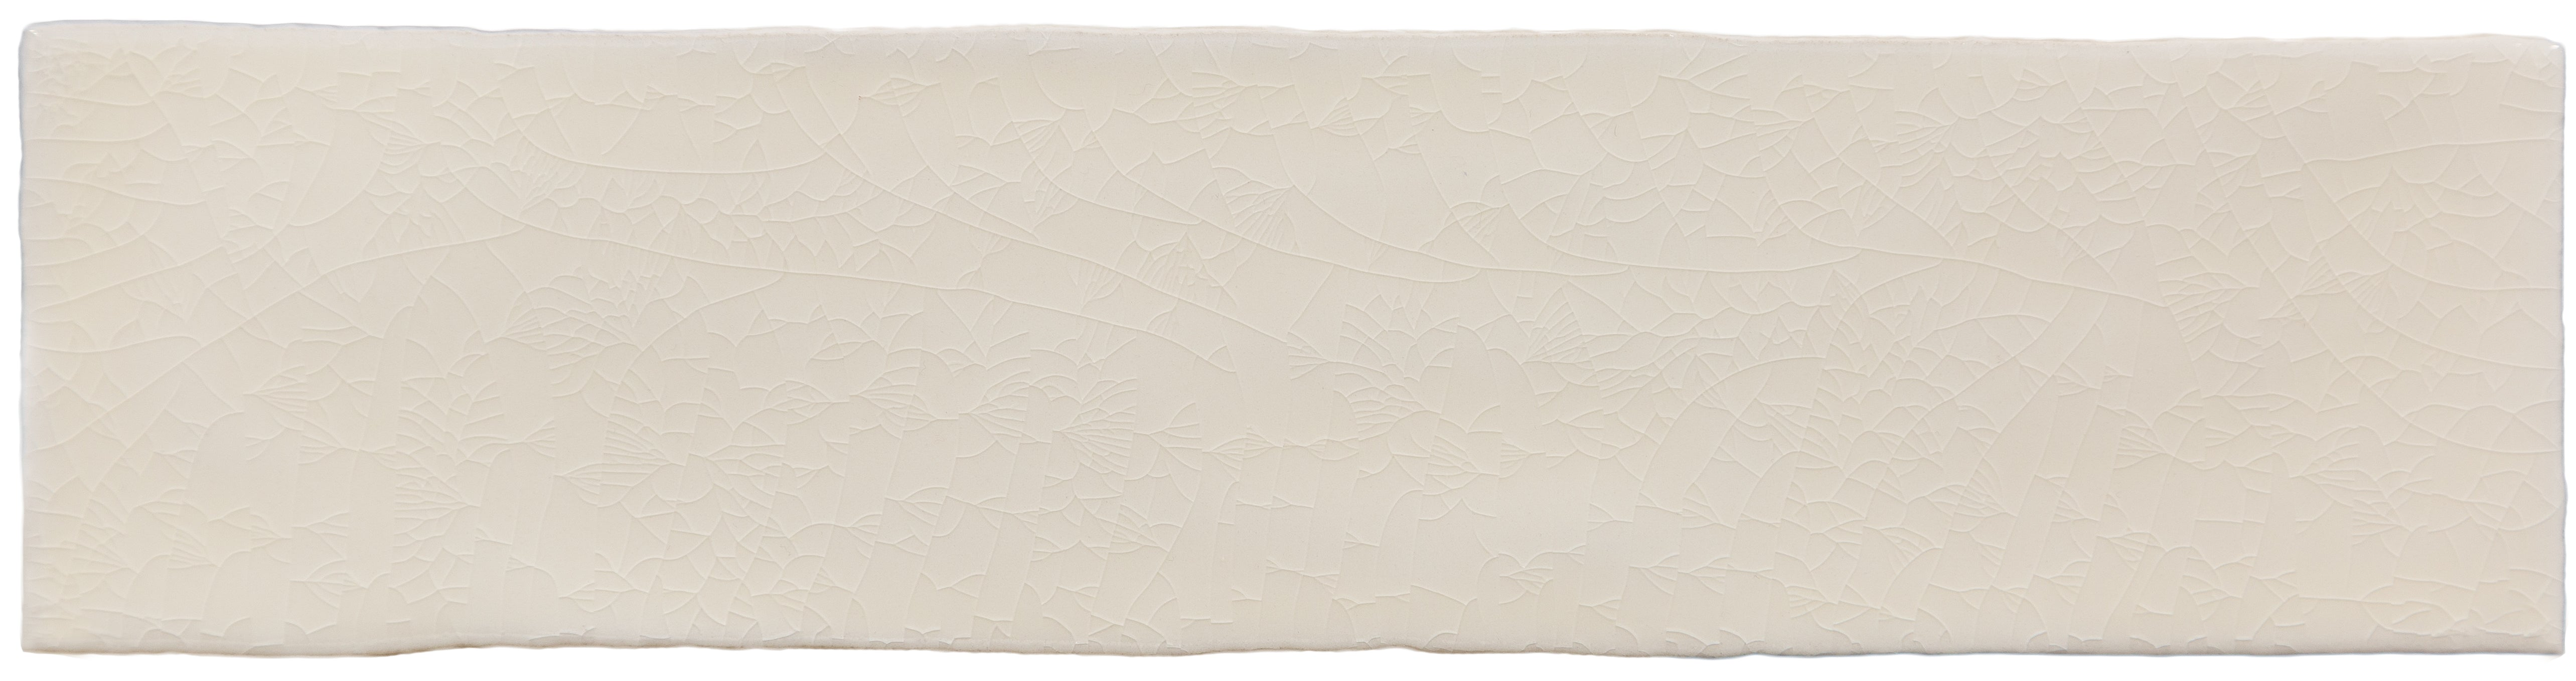 B Train Antique Cream Field Tile product photo